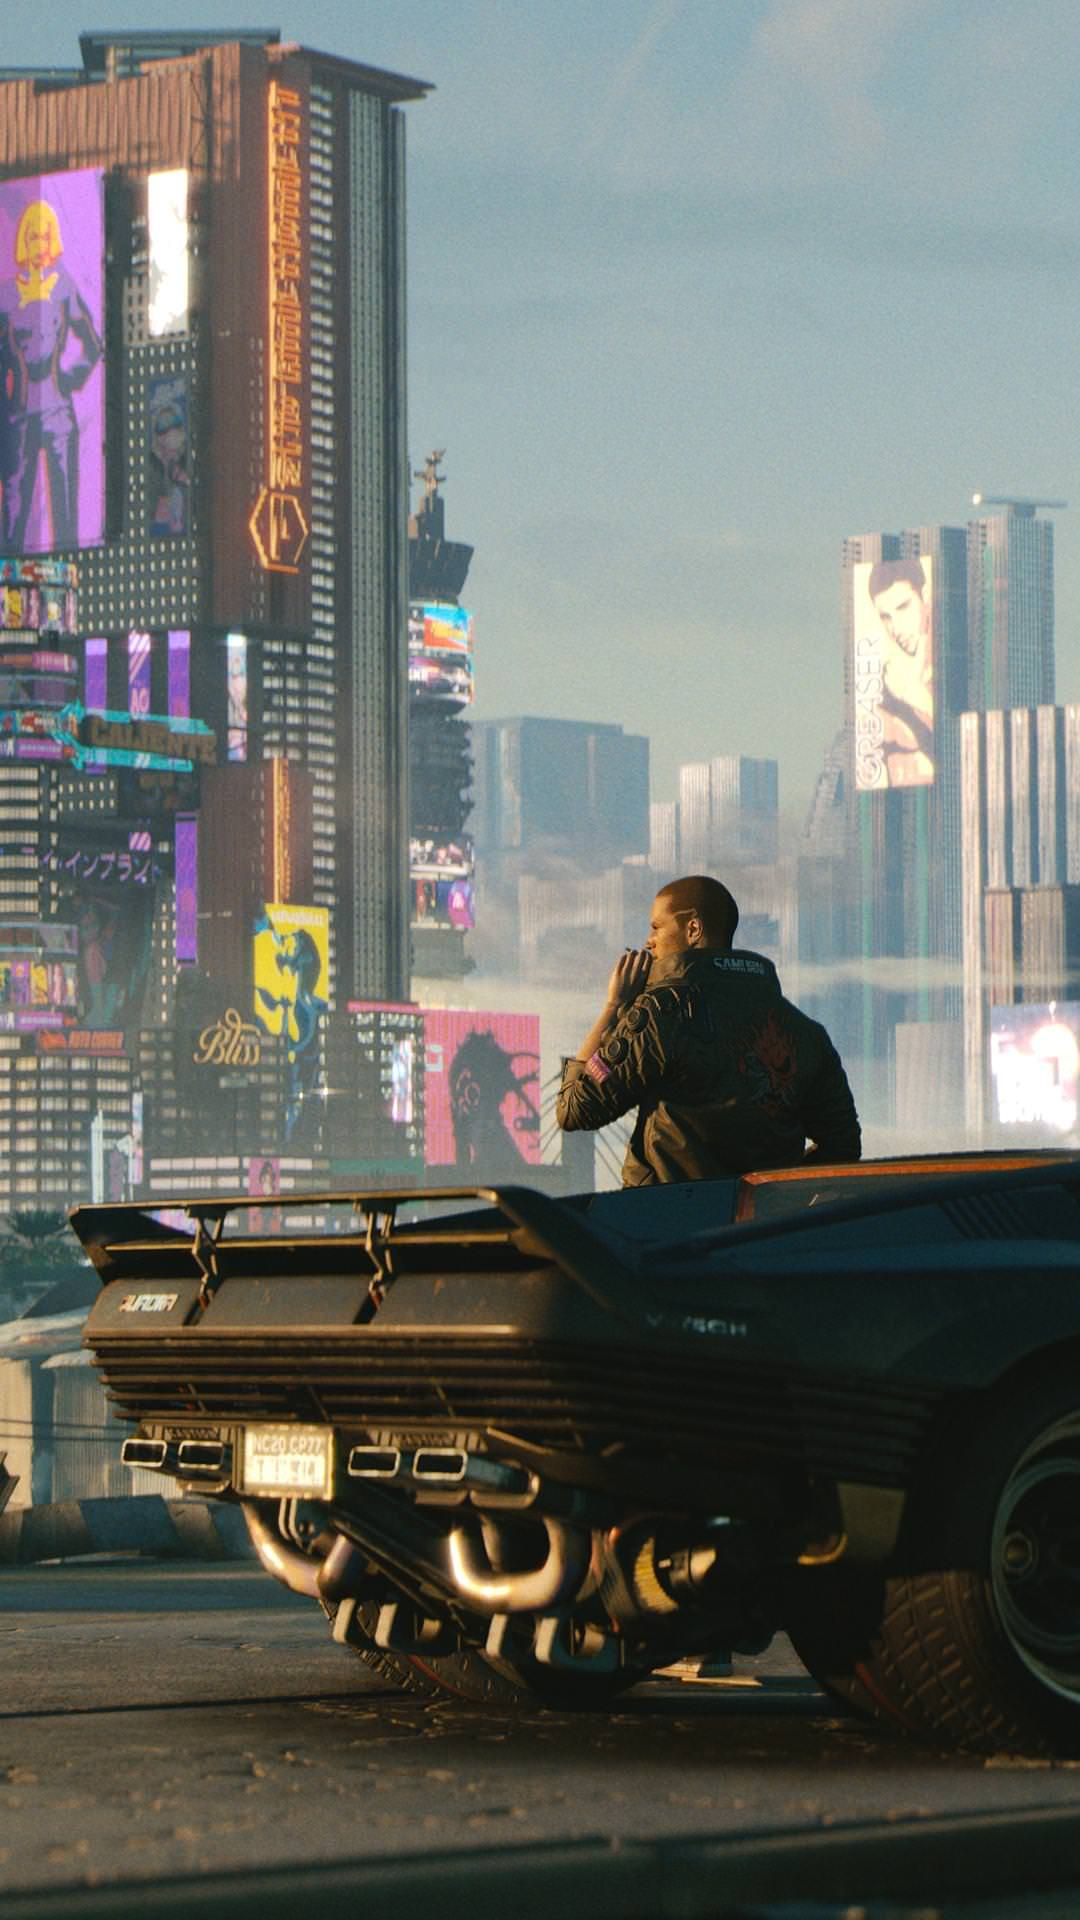 Good Guy Cdpr Have Put Up A Bunch Of Cyberpunk 2077 Mobile Phone Wallpapers Cyberpunk City Cyberpunk 2077 Cyberpunk Art